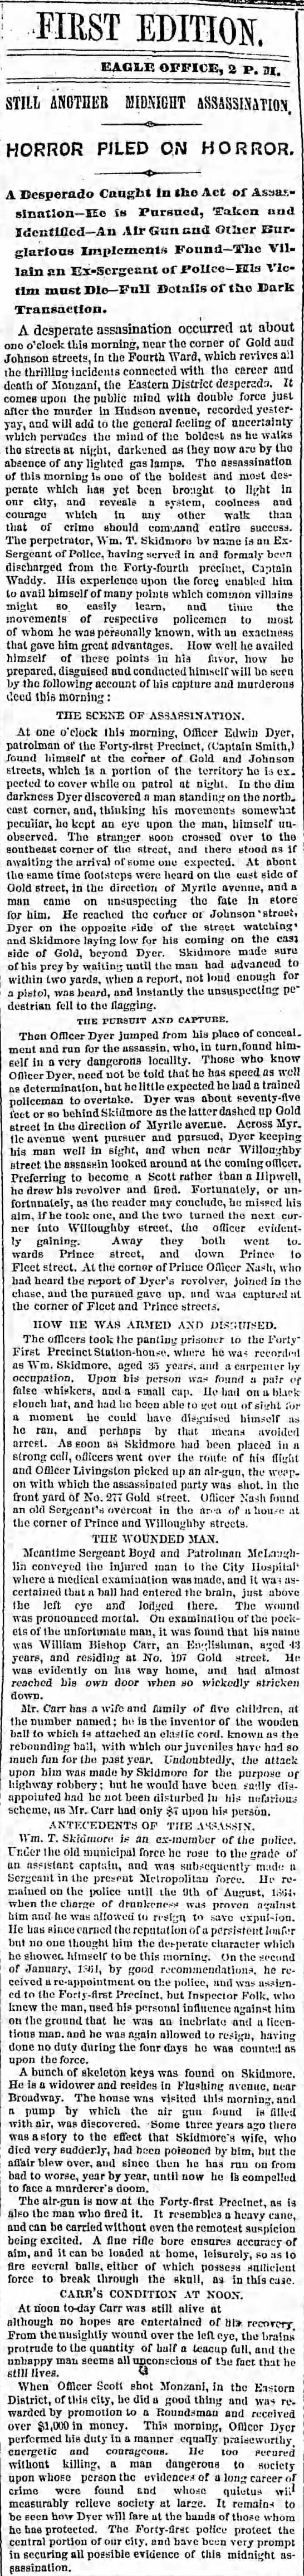 Patrolman Edwin Brough Dyer captures assassin in the 4th Ward.